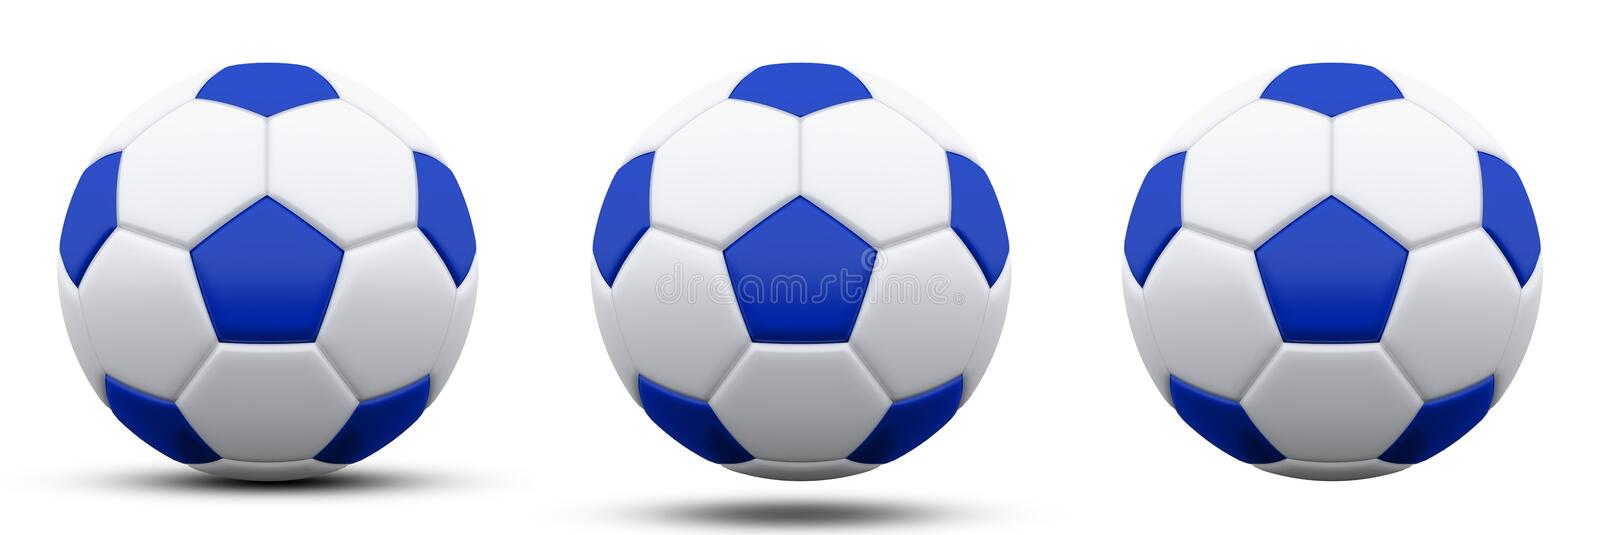 Blue and white soccer ball in three versions, with and without shadow. Isolated on white. 3d render. stock illustration